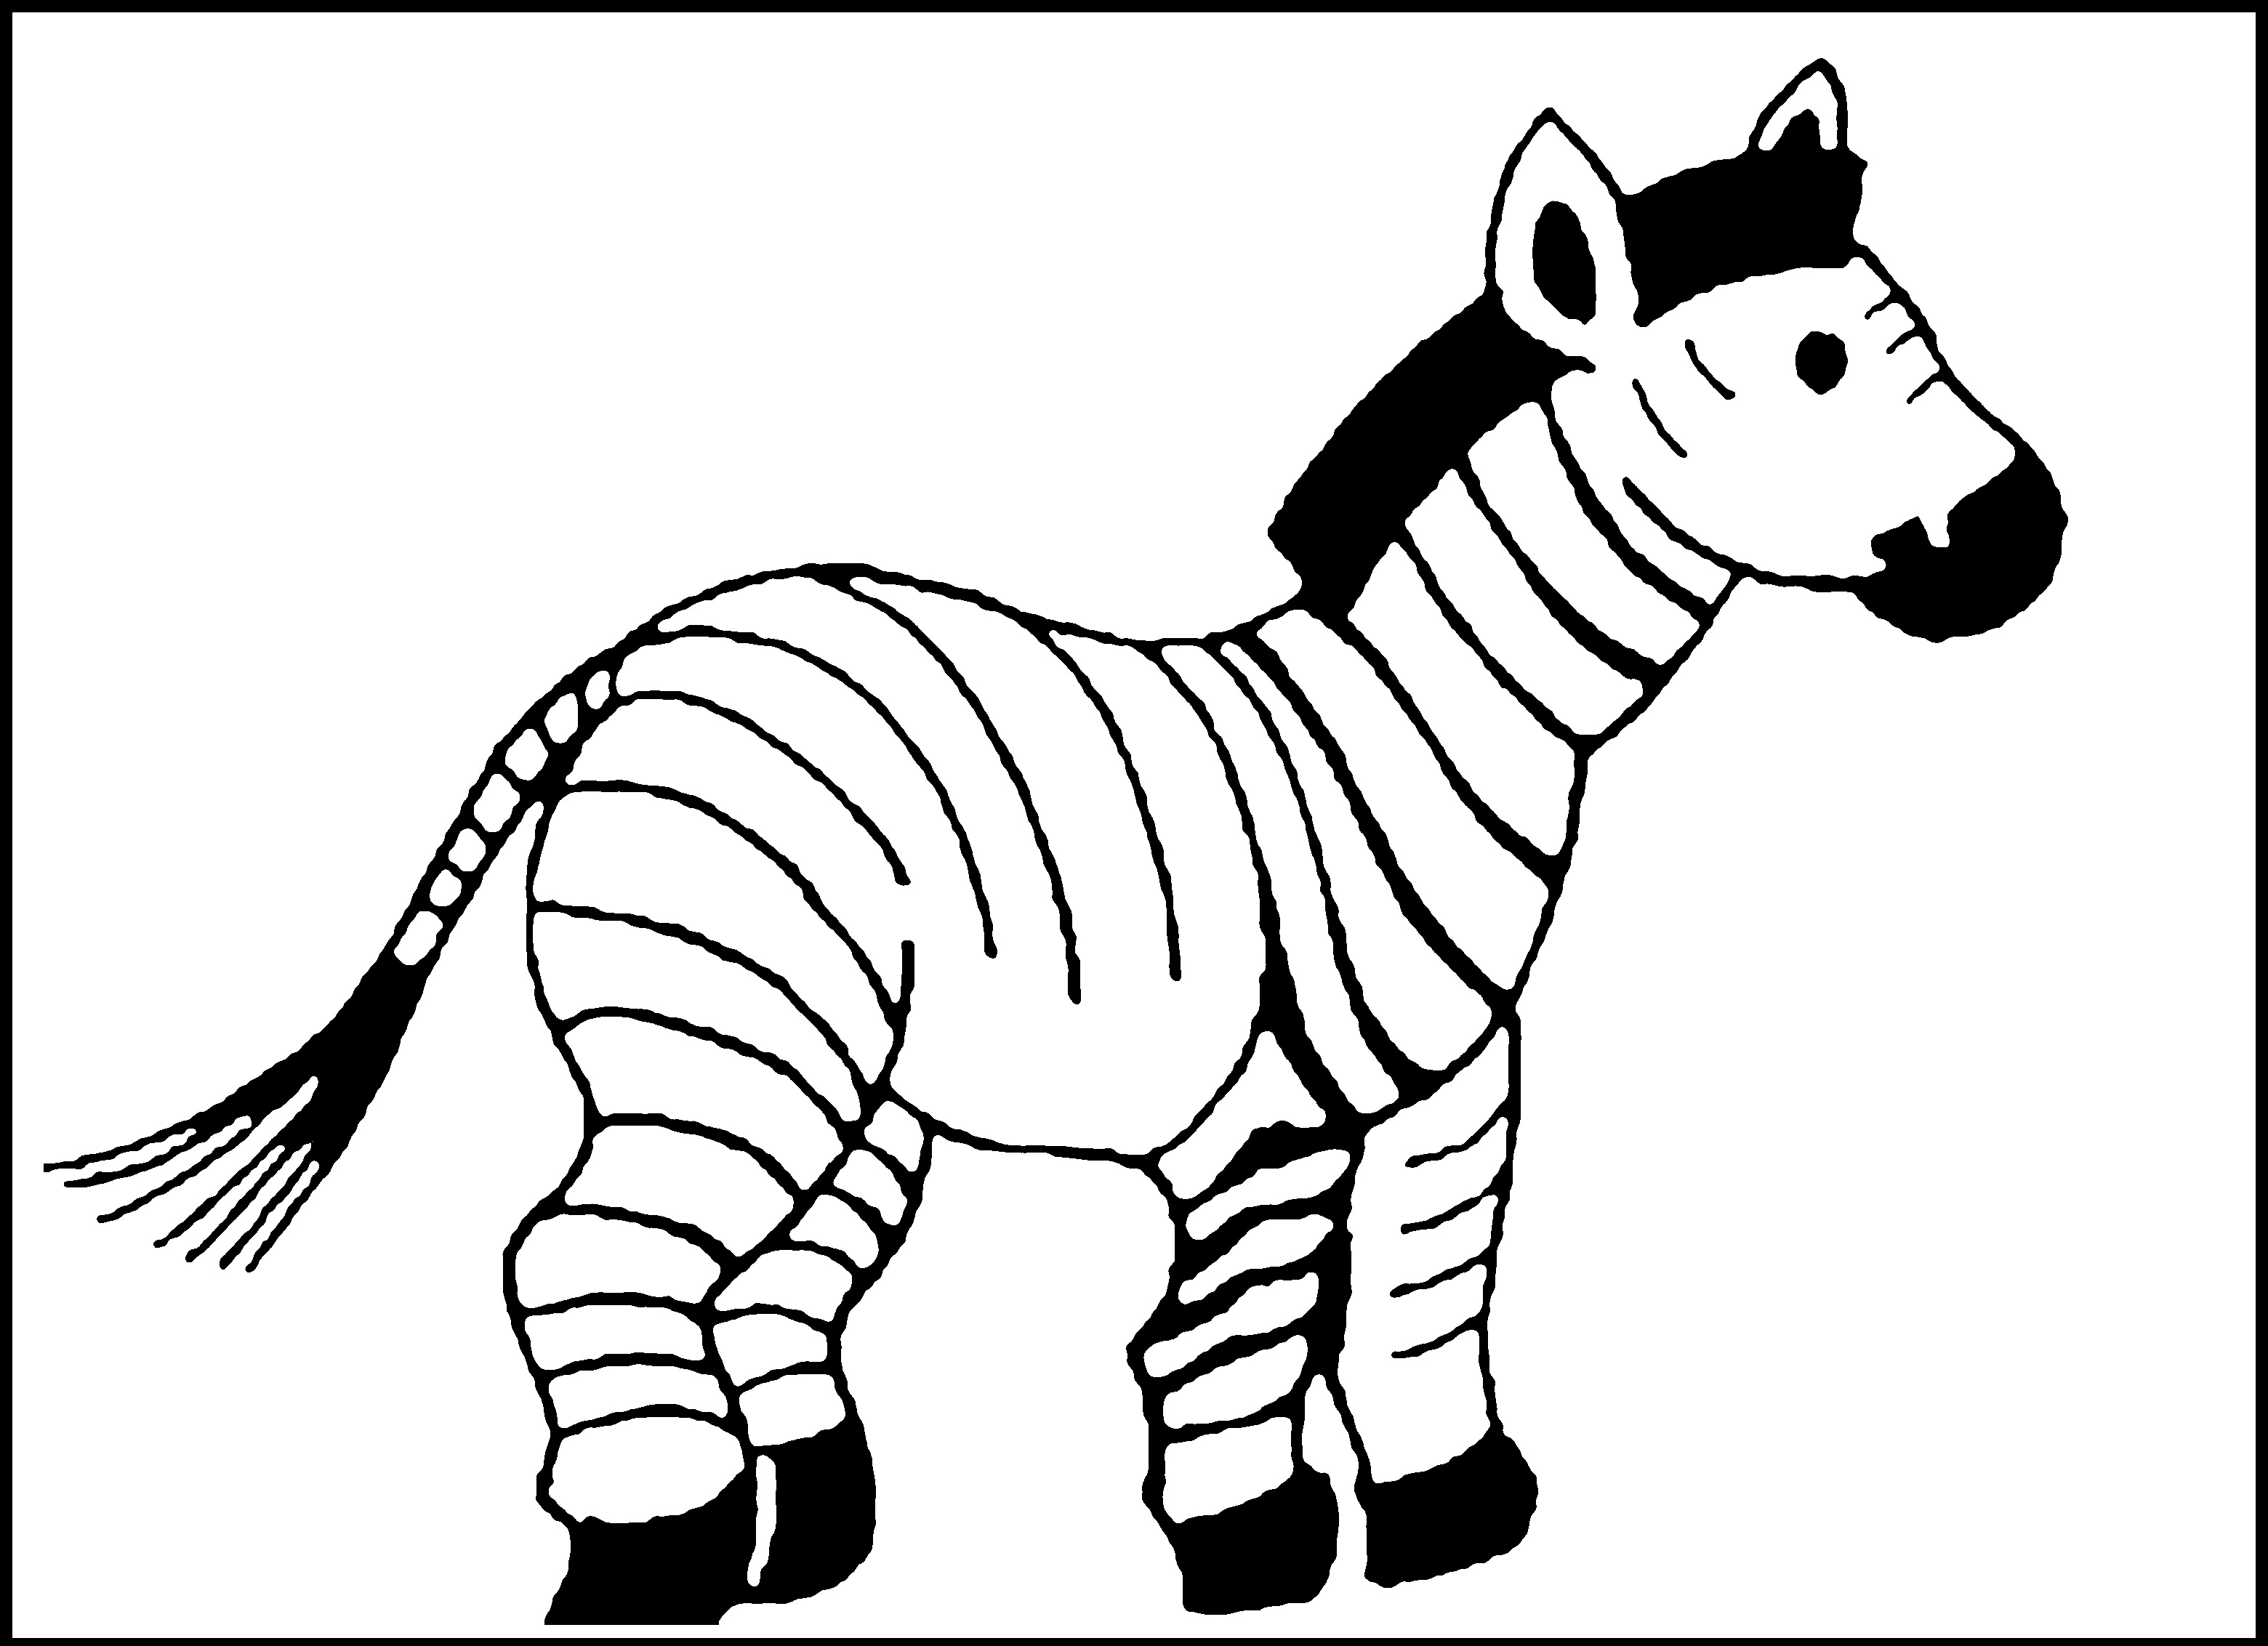 coloring animal pictures to colour llama easy adult coloring animals woo jr kids activities colour animal pictures coloring to